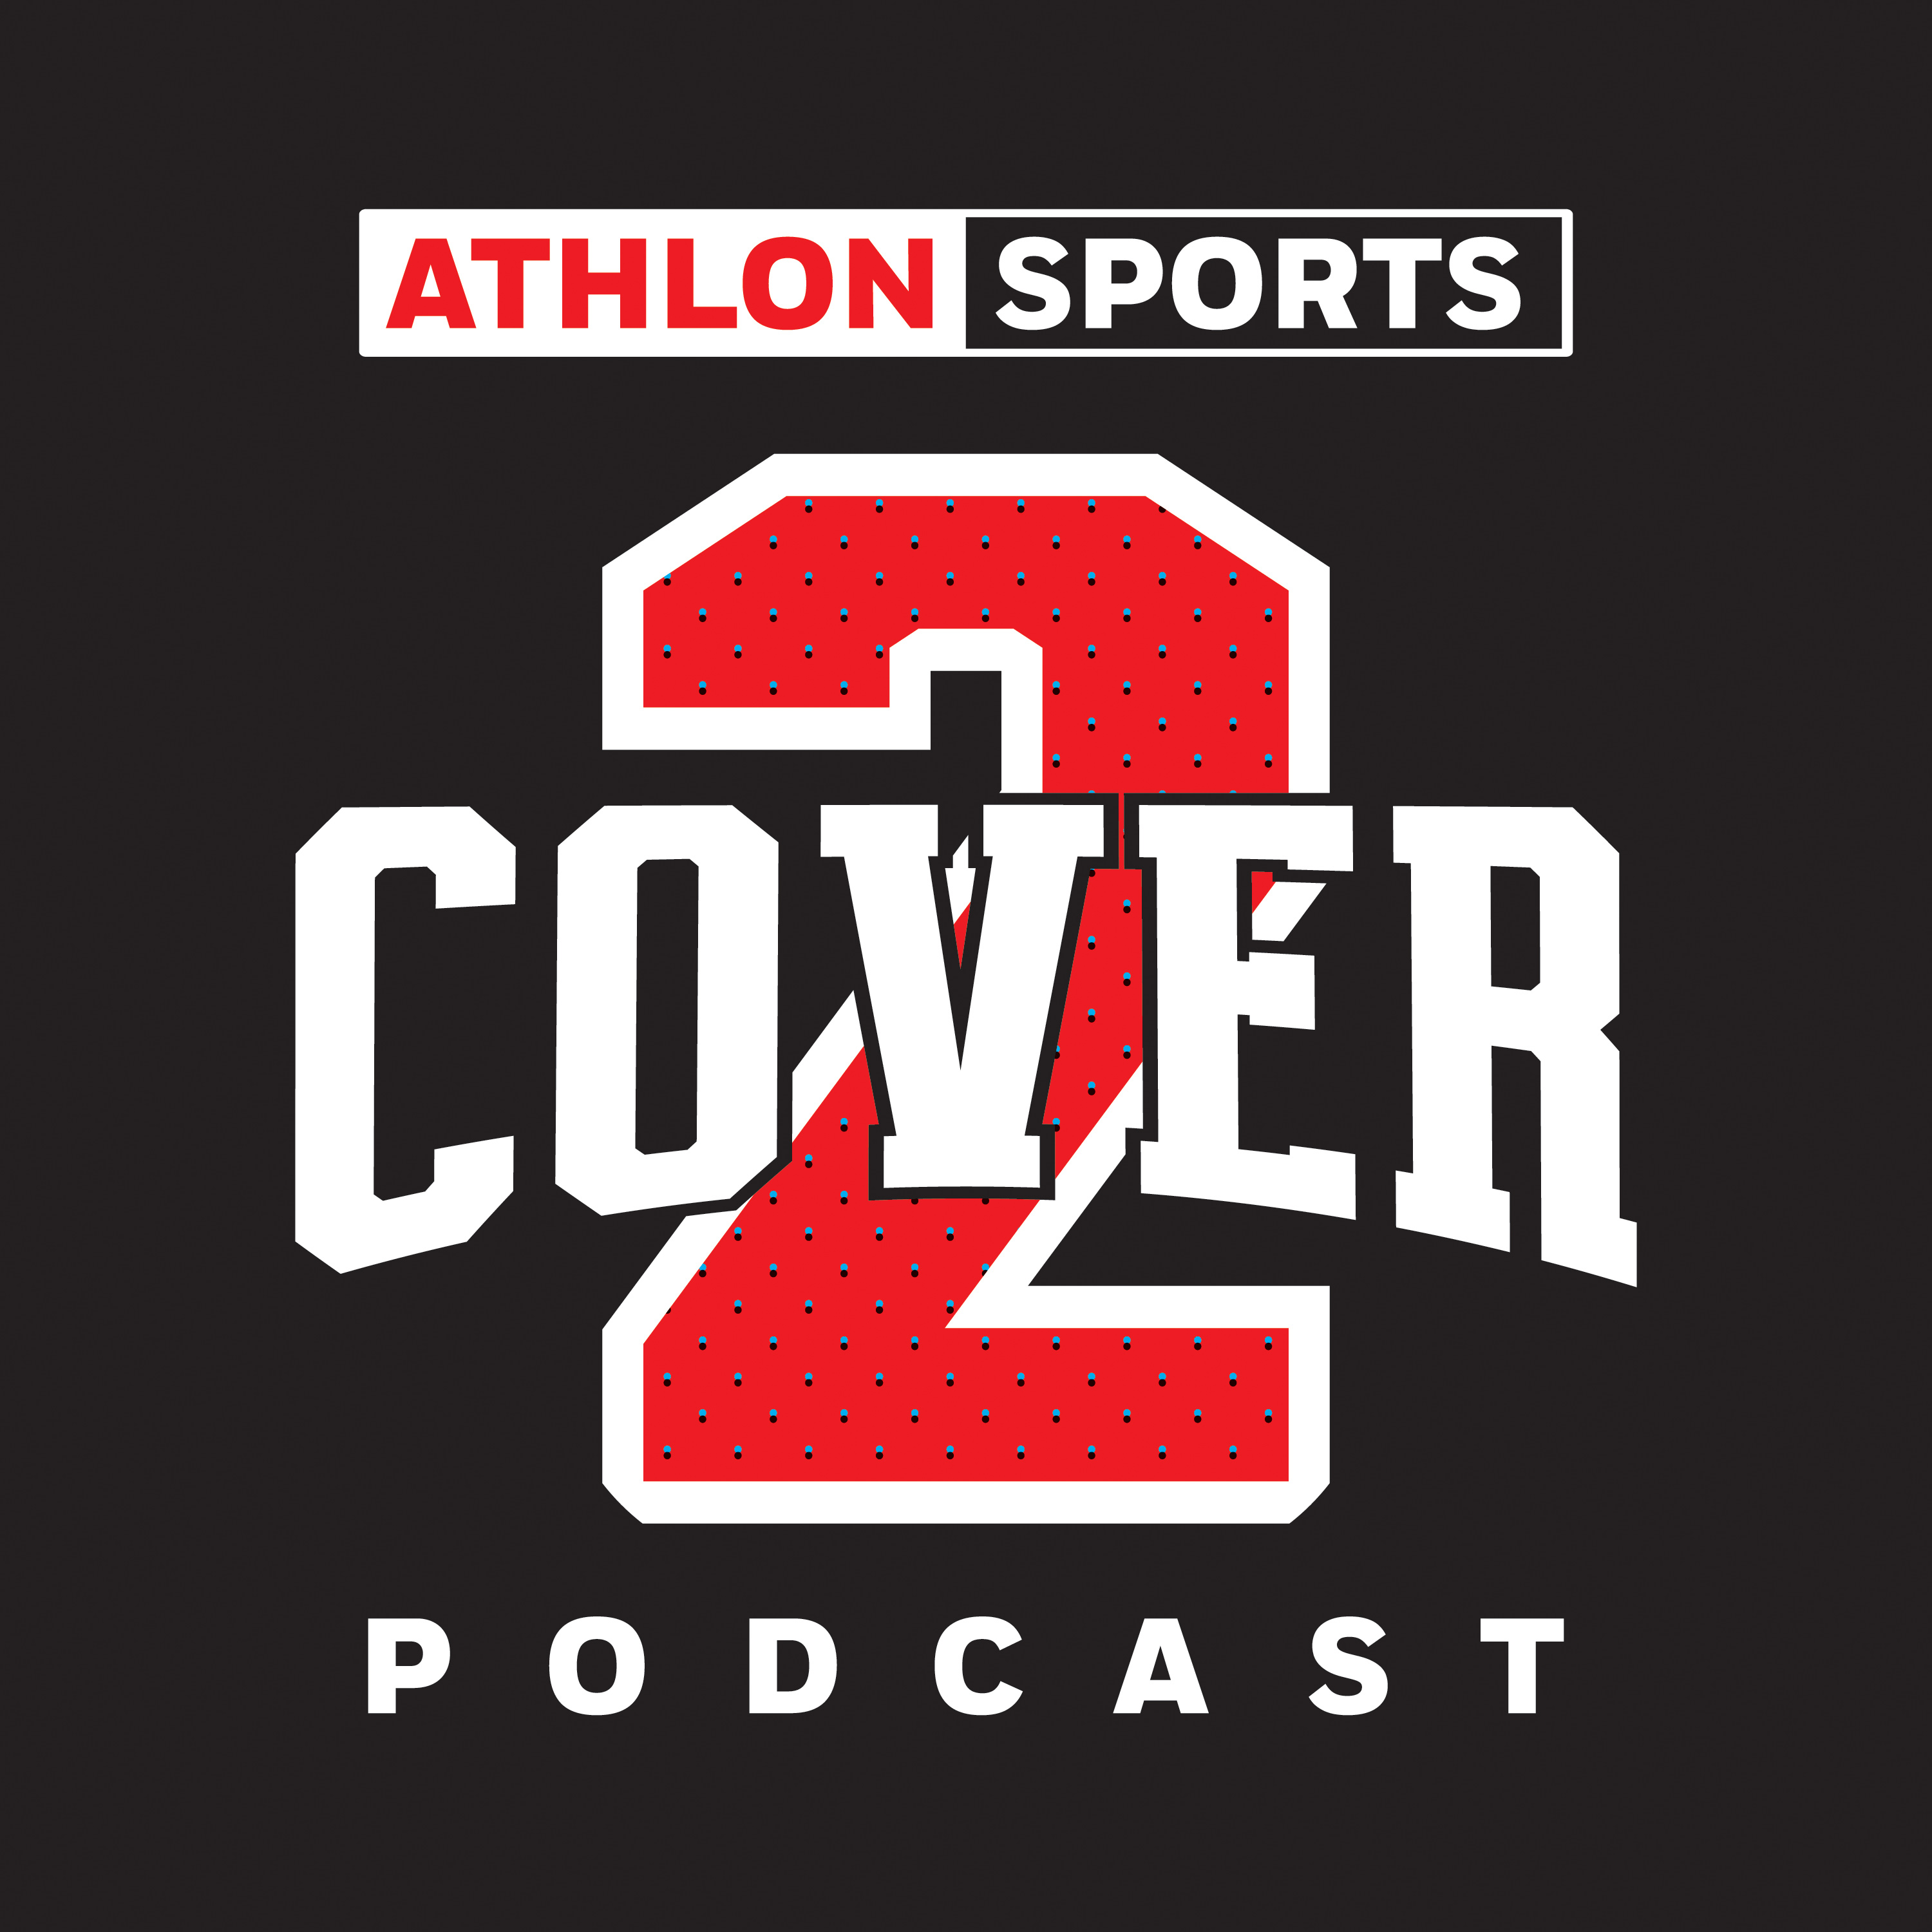 Athlon Sports Cover 2 College Football Podcast show art